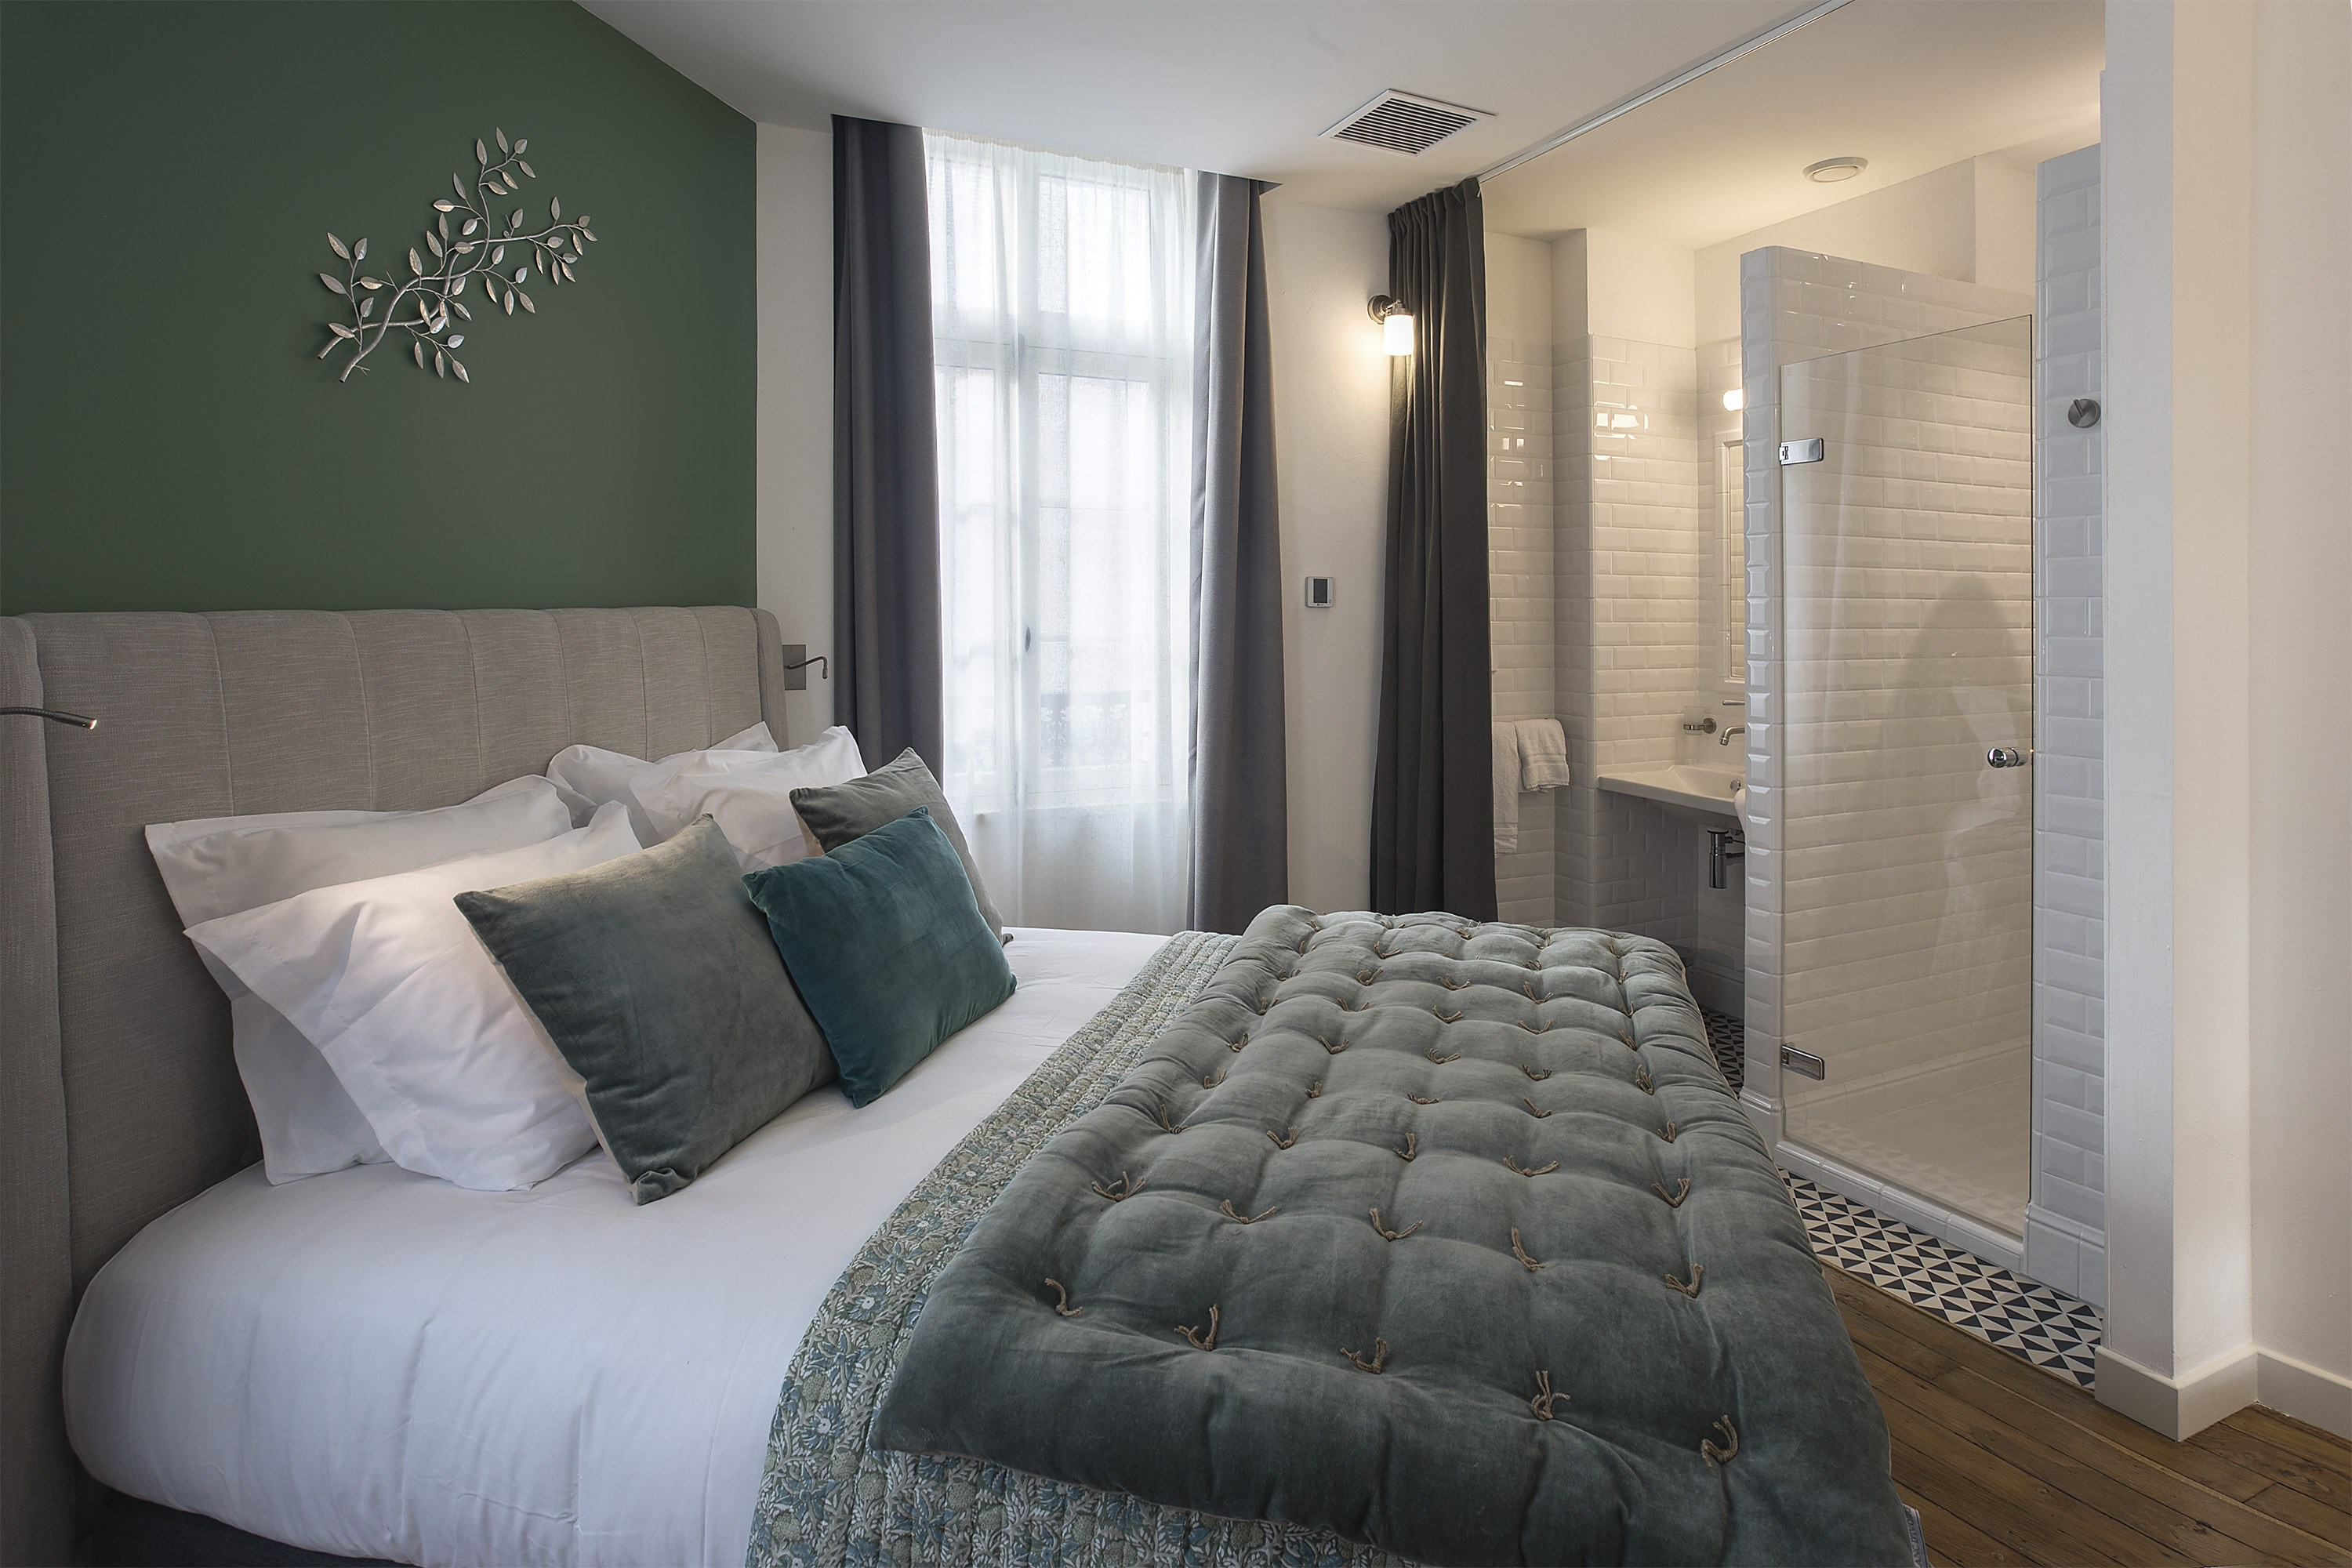 appart-hotel-angouleme-appartement-2-chambres-lit-king